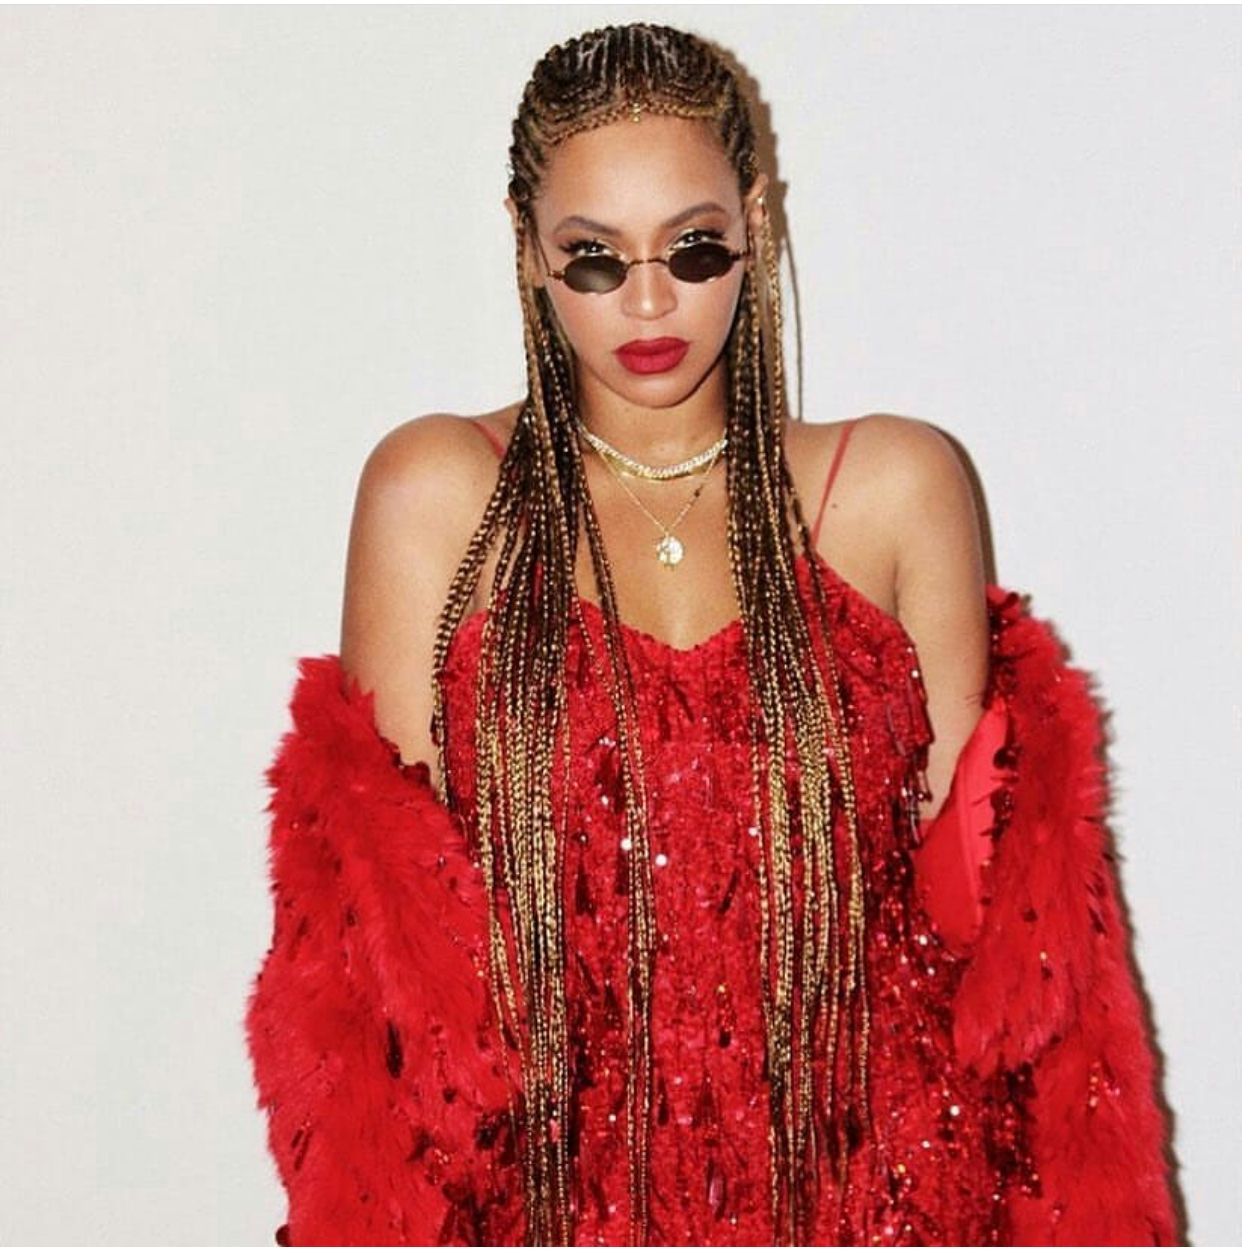 Pin by Dangerously Glam on Hair Goals Beyonce outfits